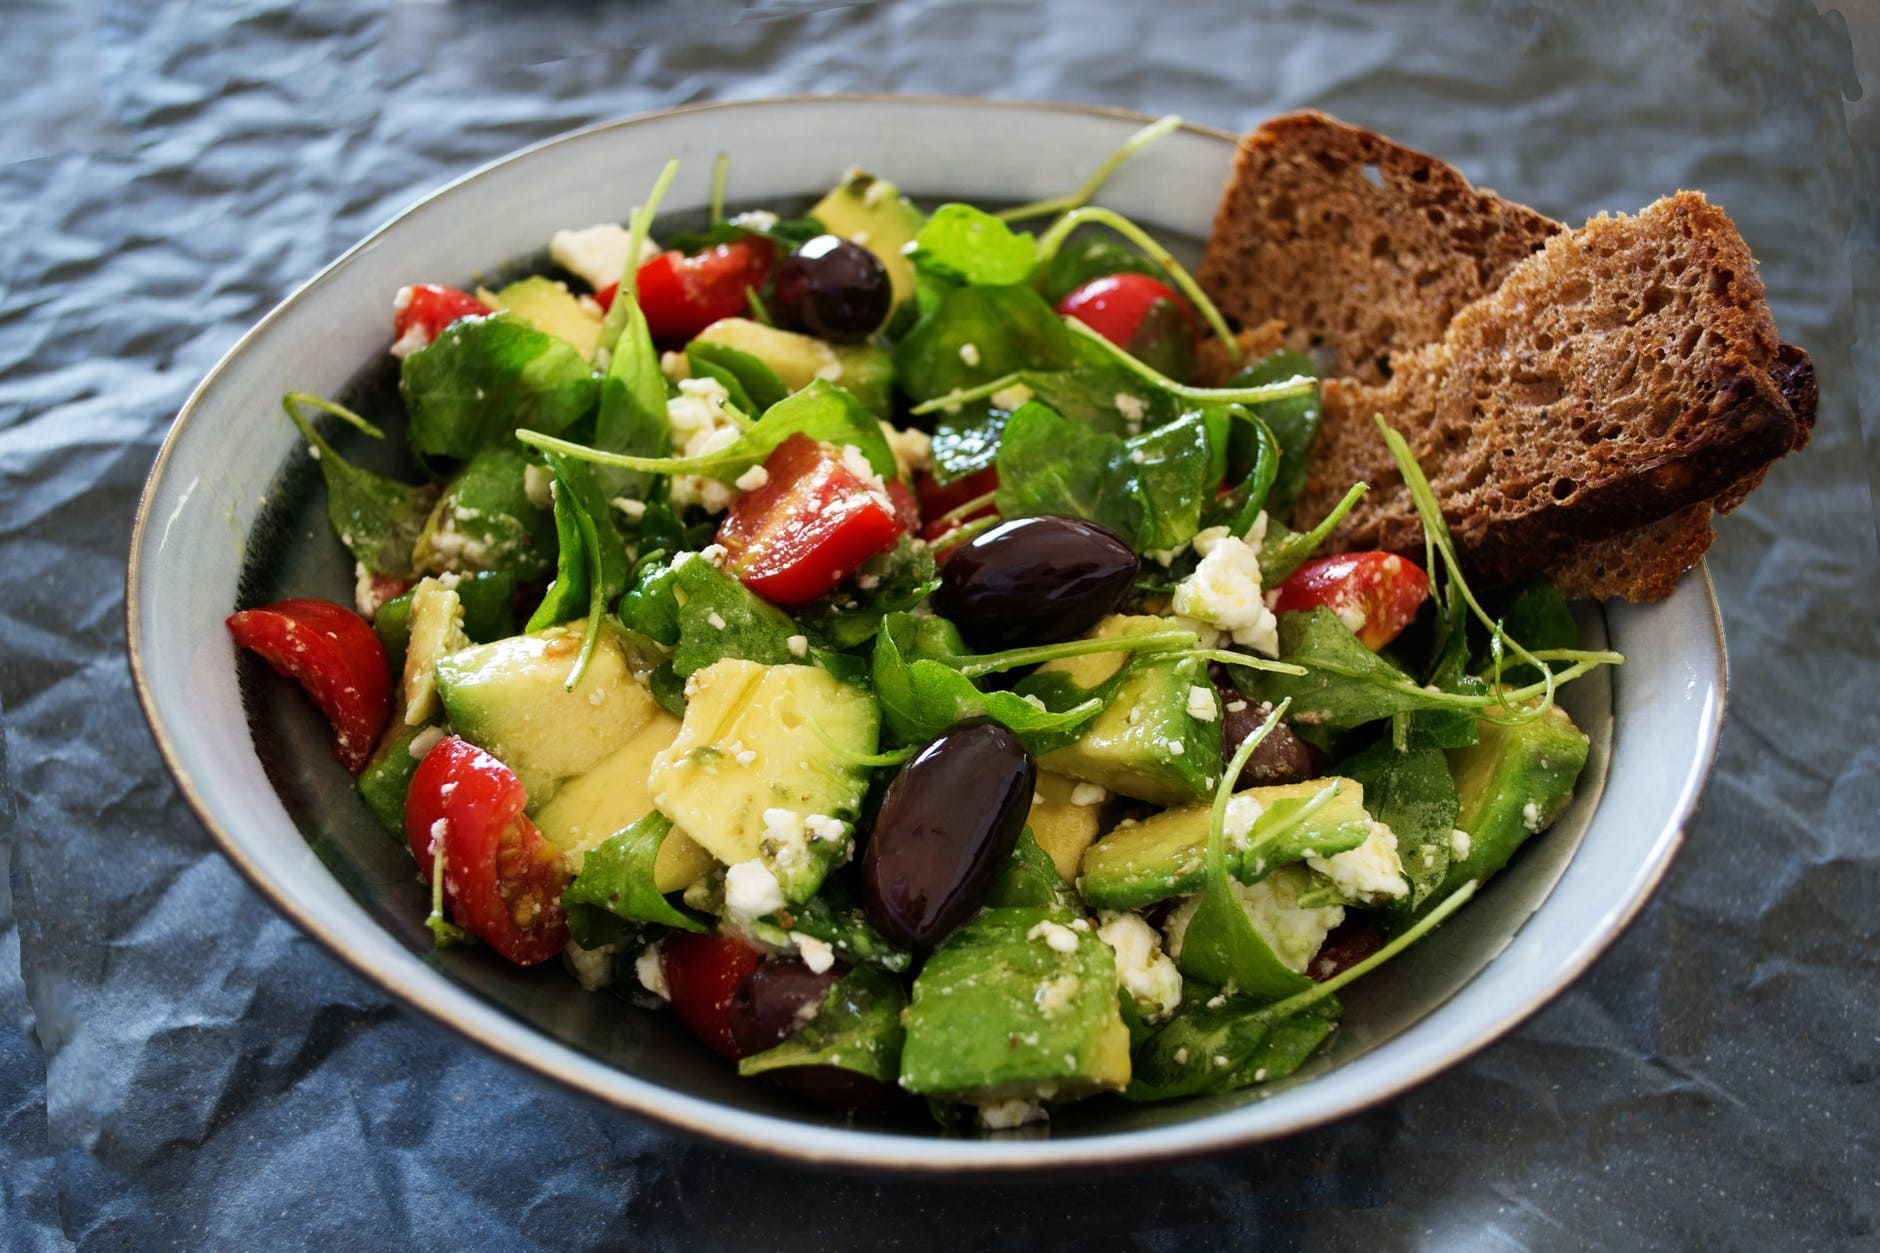 How to make a spicy olive salad